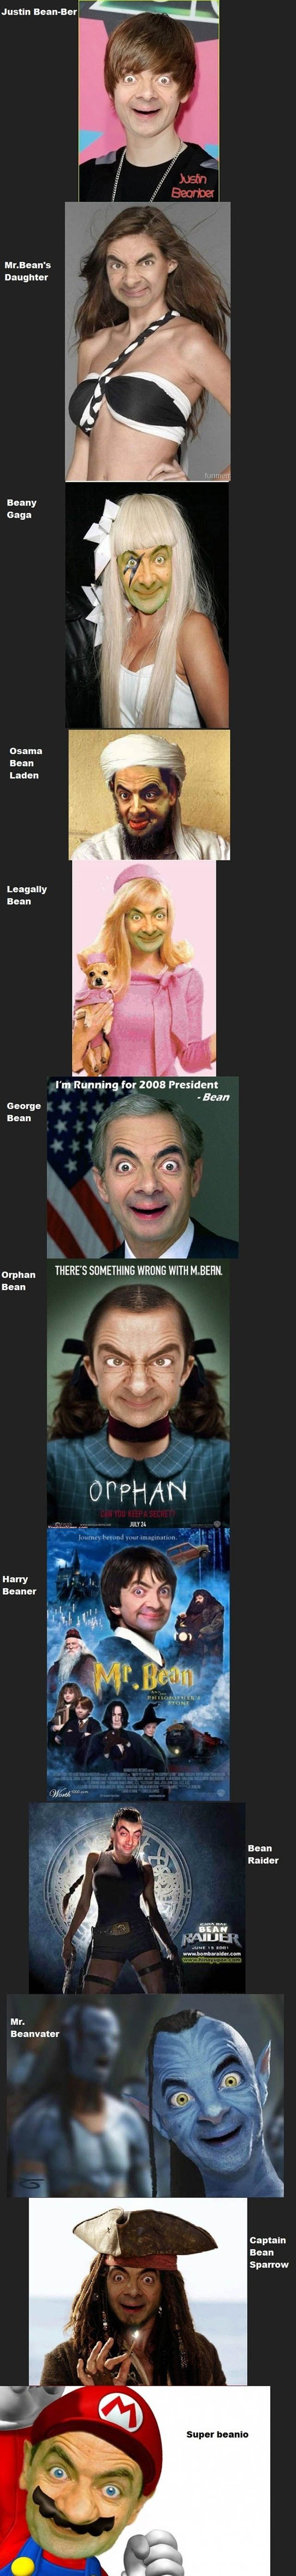 Mr. Bean..... Scary, just scary.....